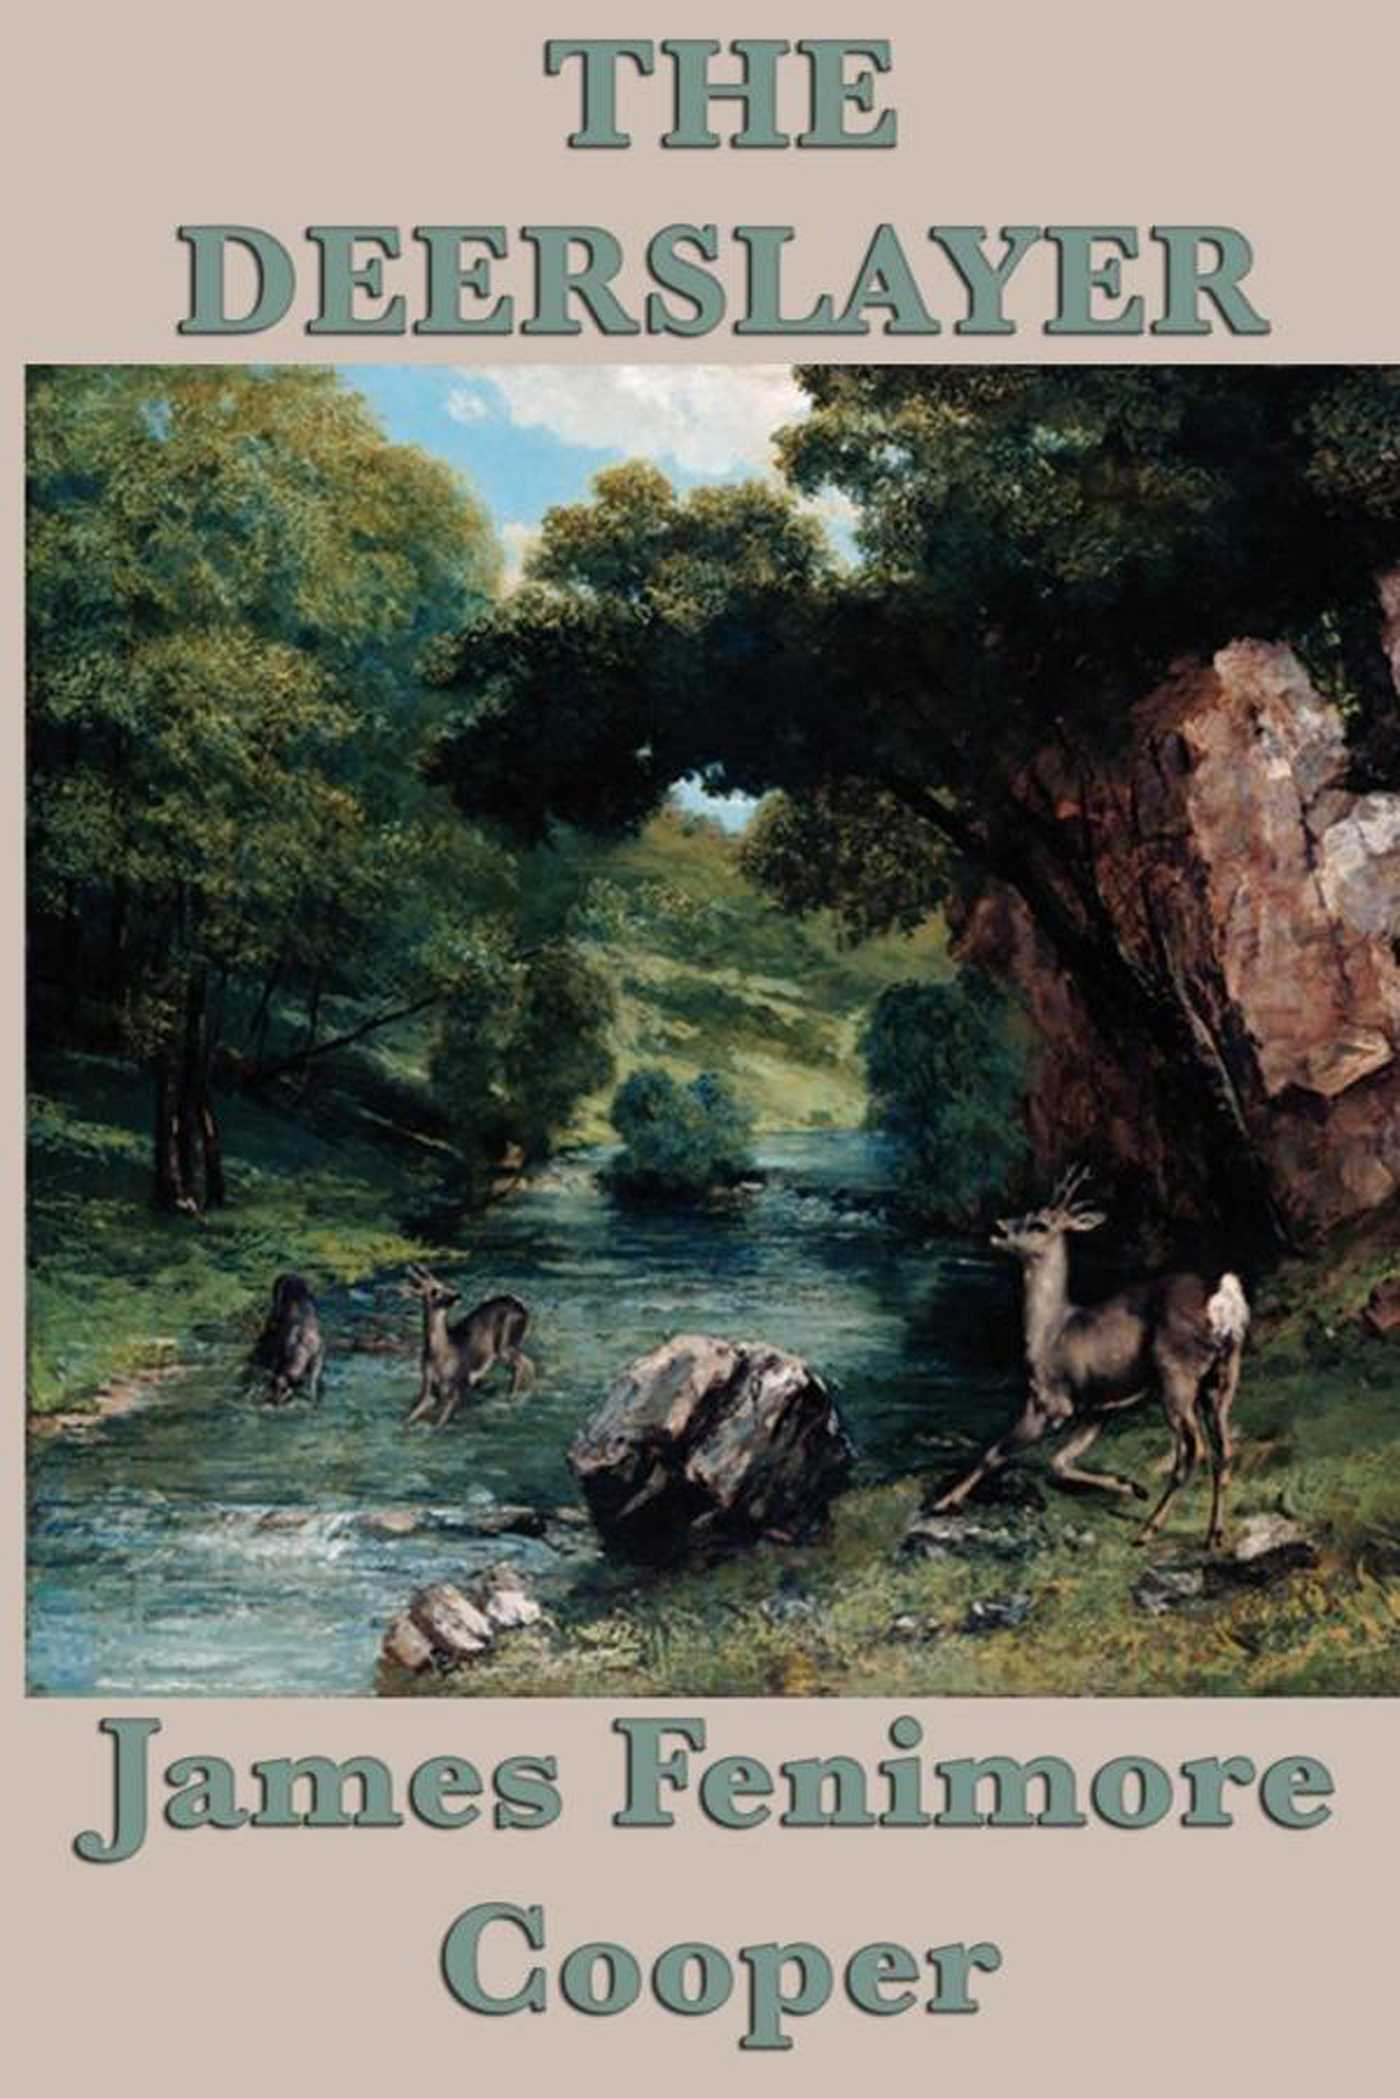 Image result for deerslayer book cover